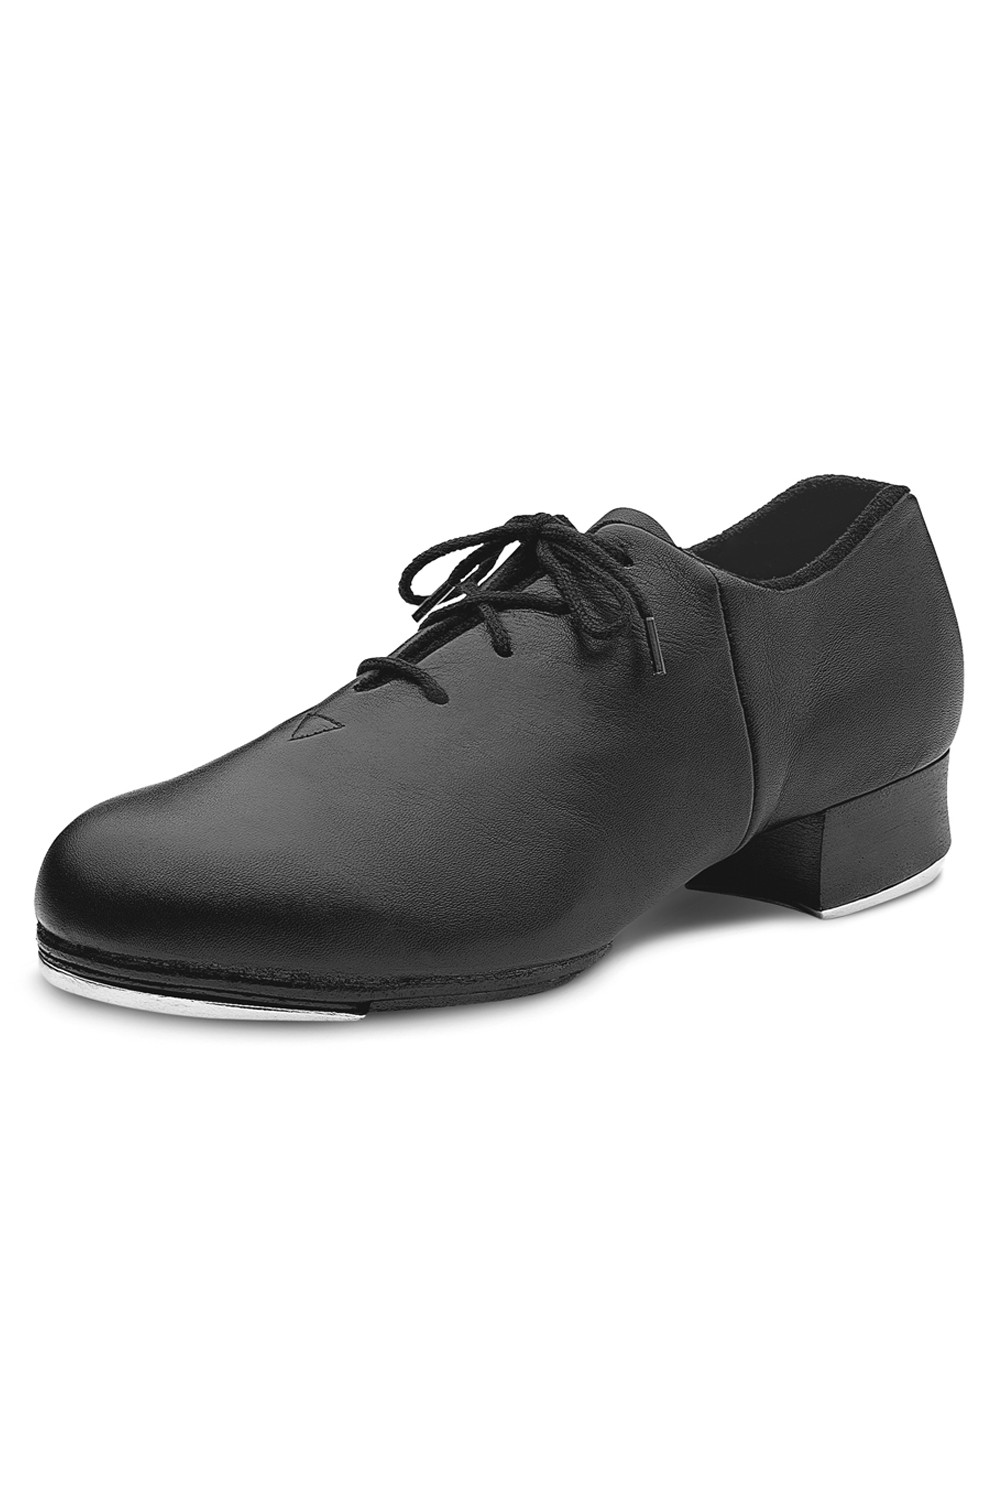 Tap-flex - Uomo Men's Tap Shoes